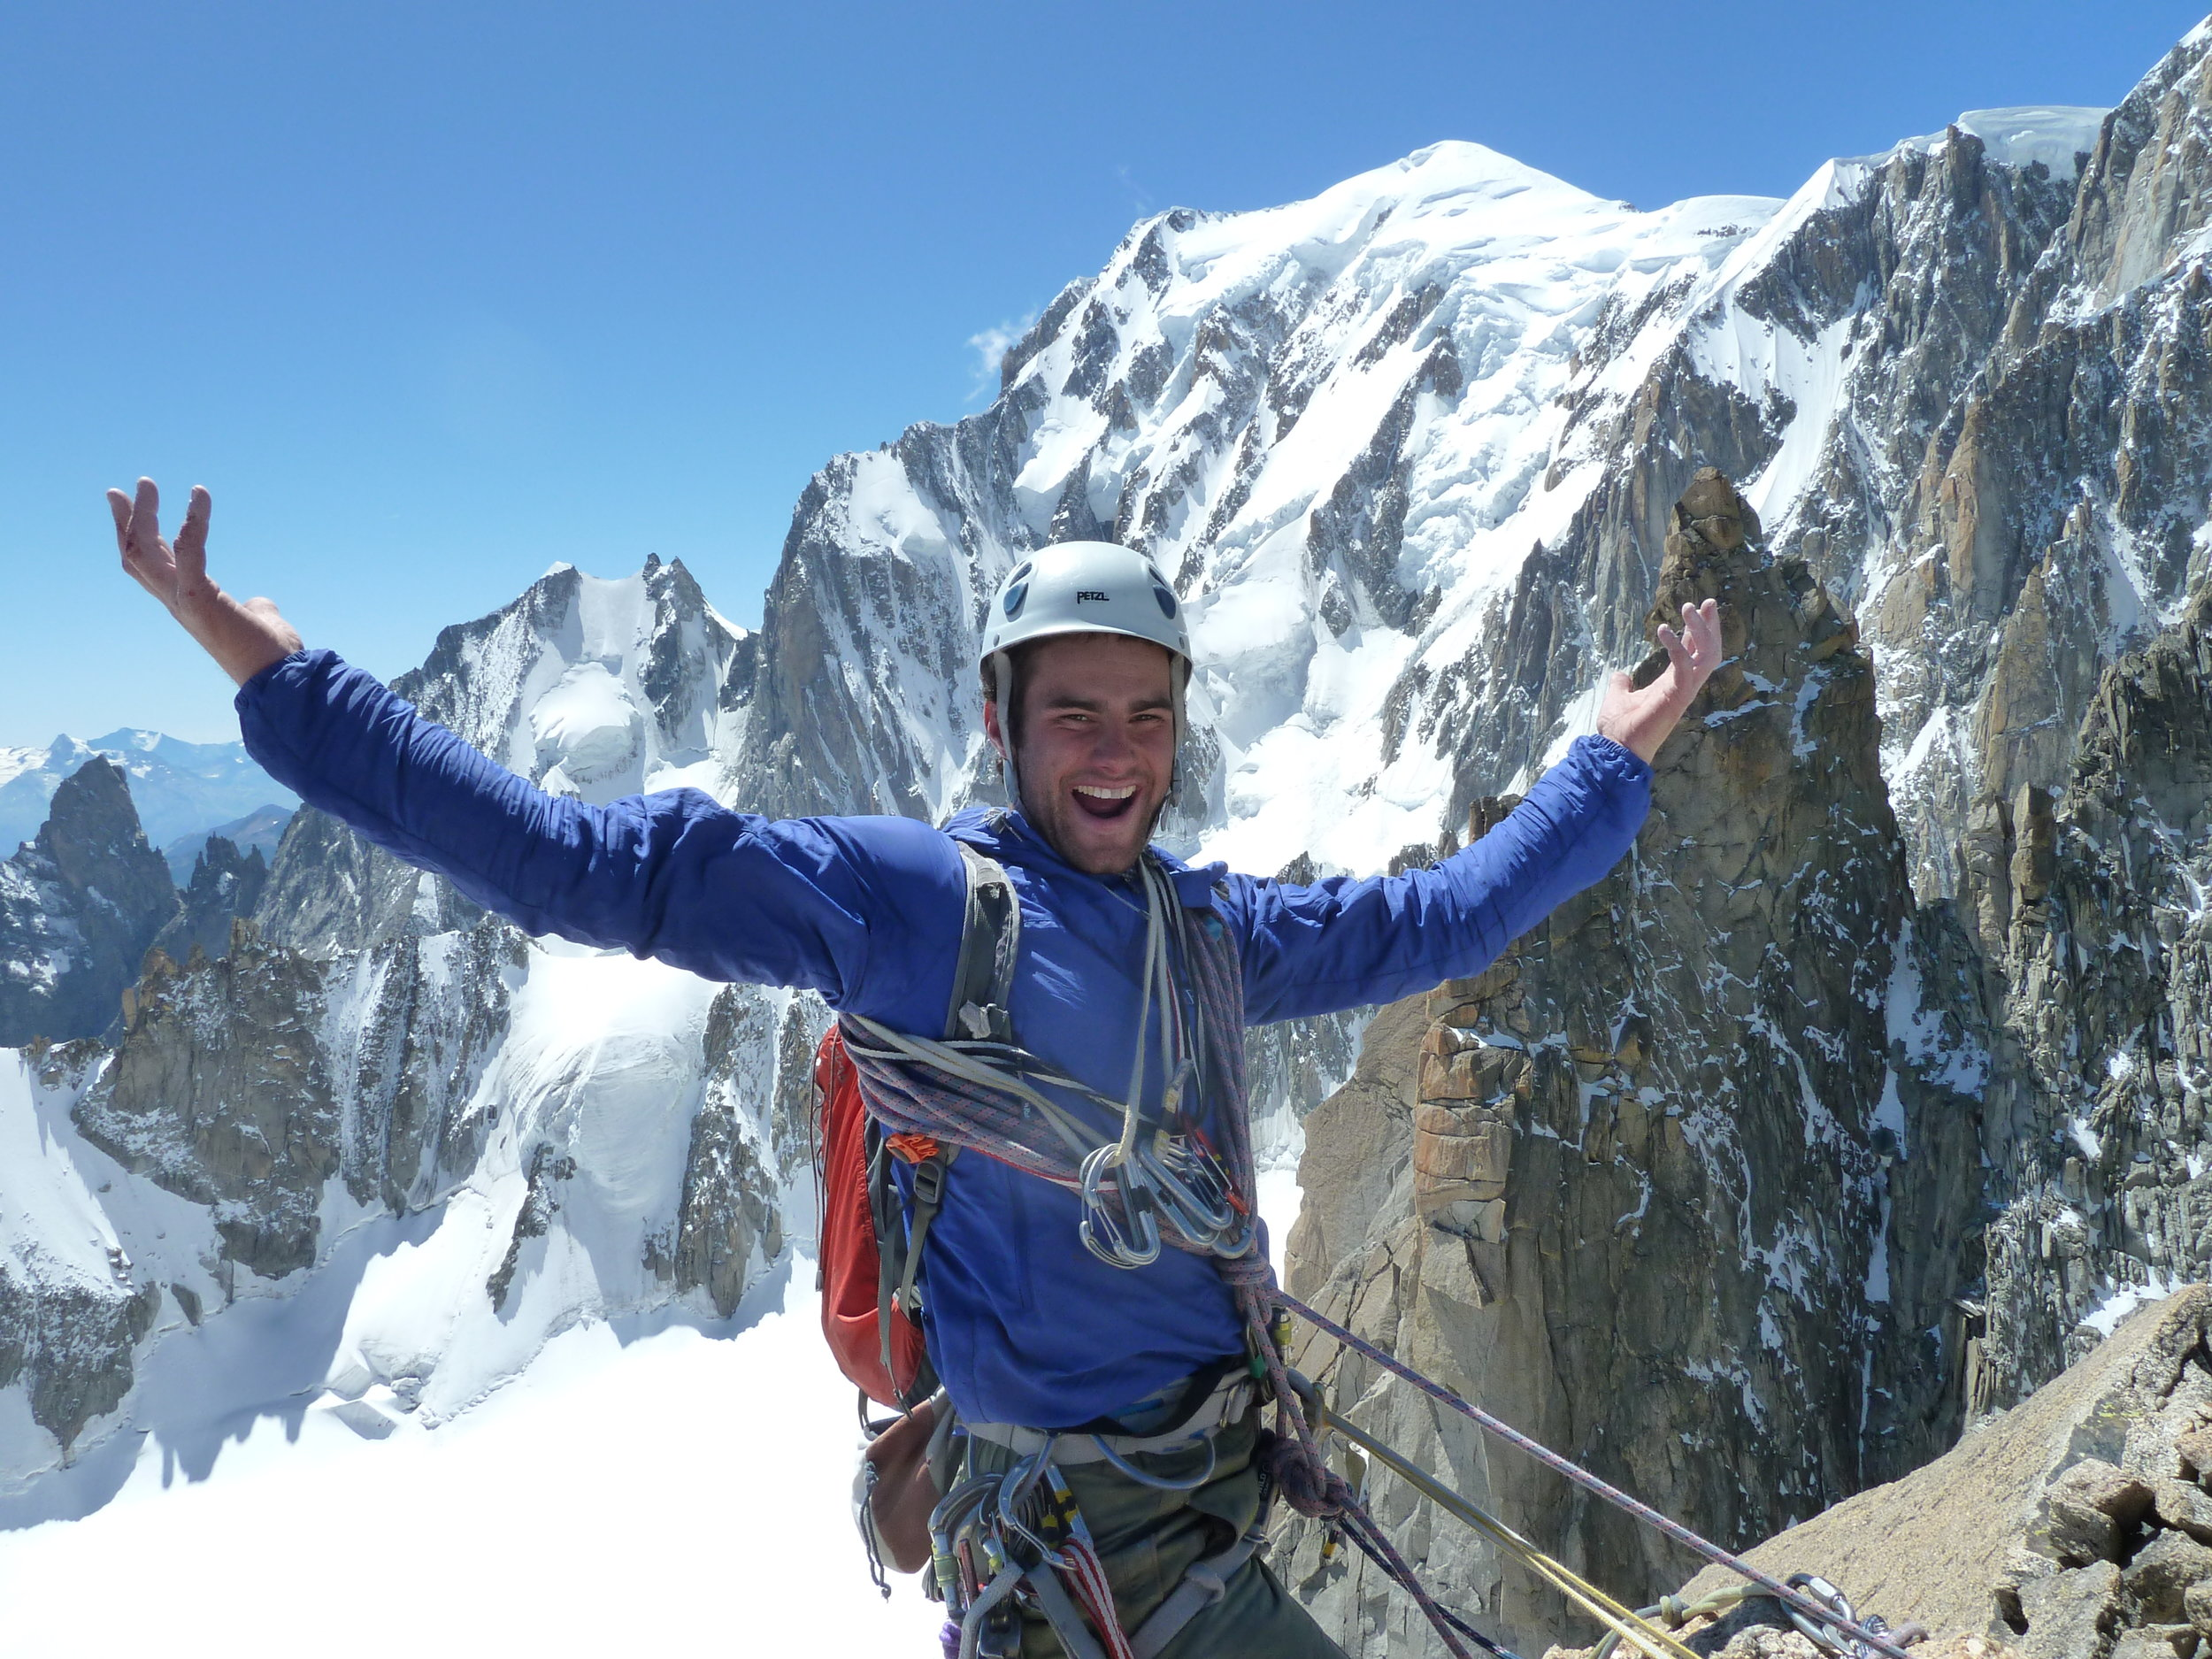 ollie burrows, summit of grand capucin, mont blanc massif. chamonix